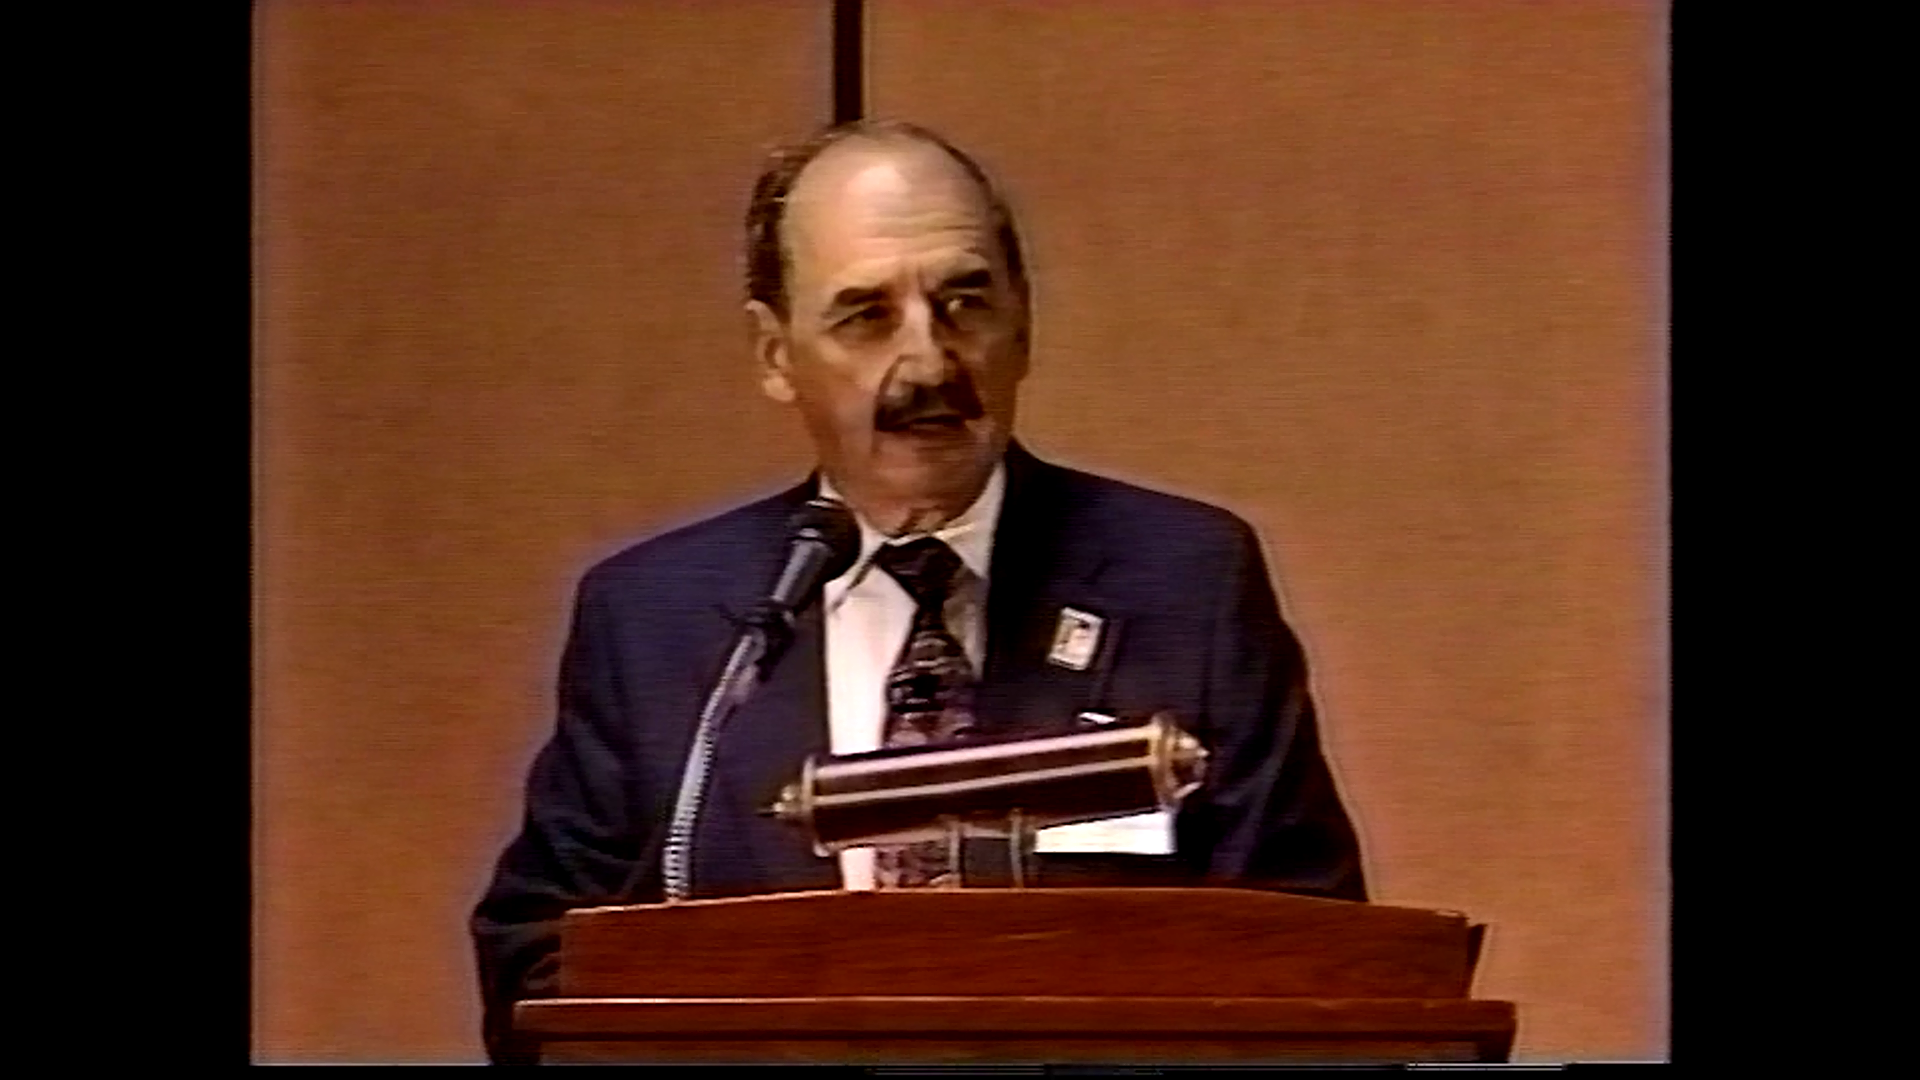 Video: Sherlock Holmes & Numismatics – 1991 ANA Convention Presentation